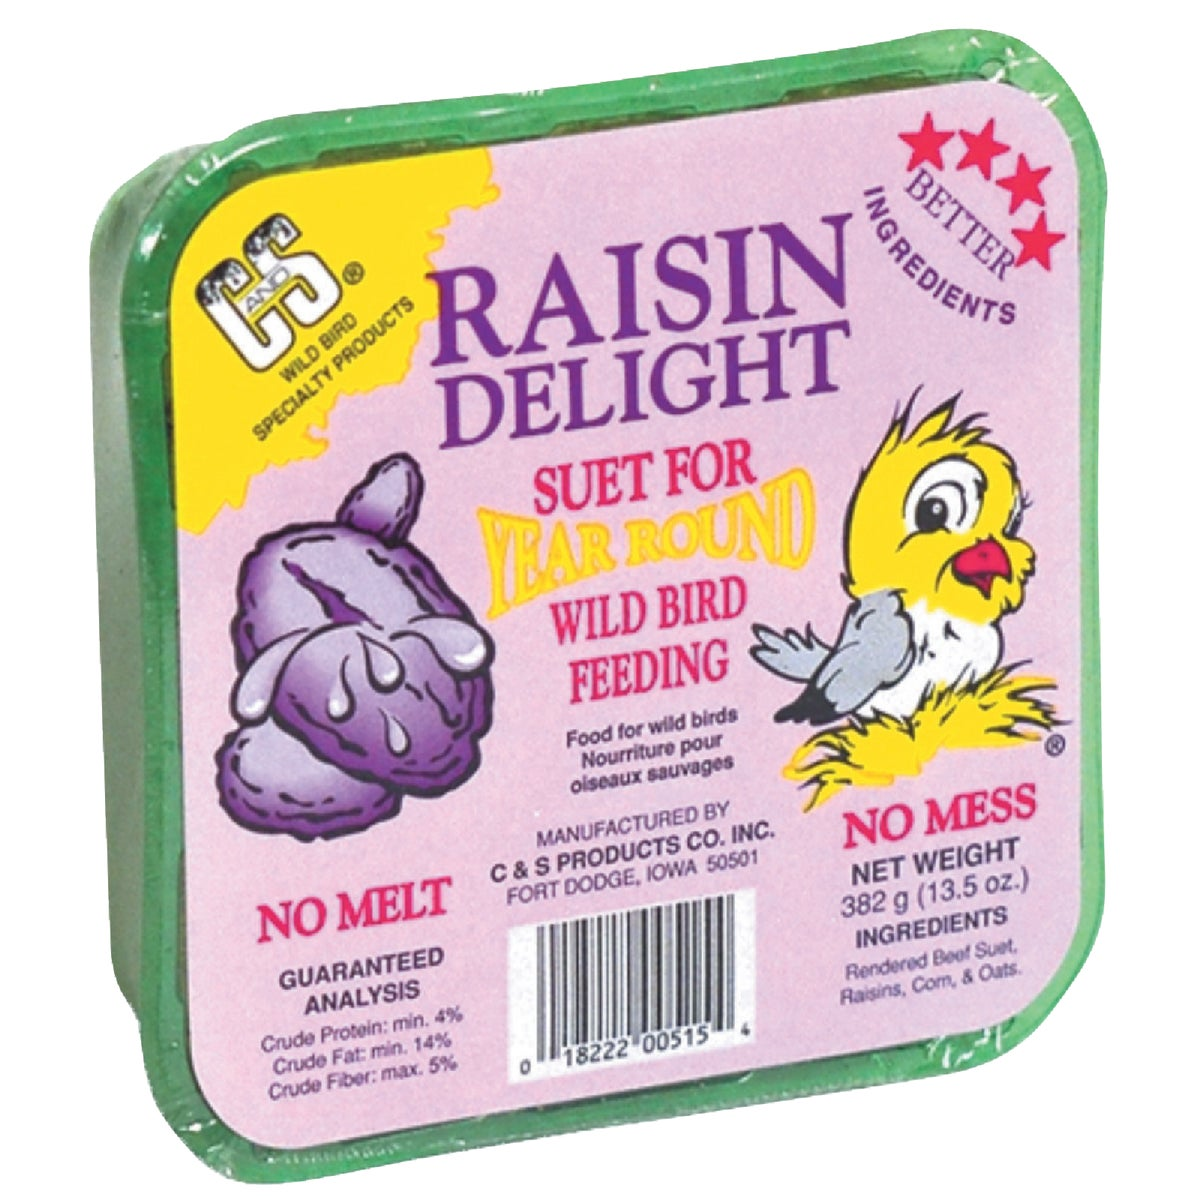 RAISIN DELIGHT SUET